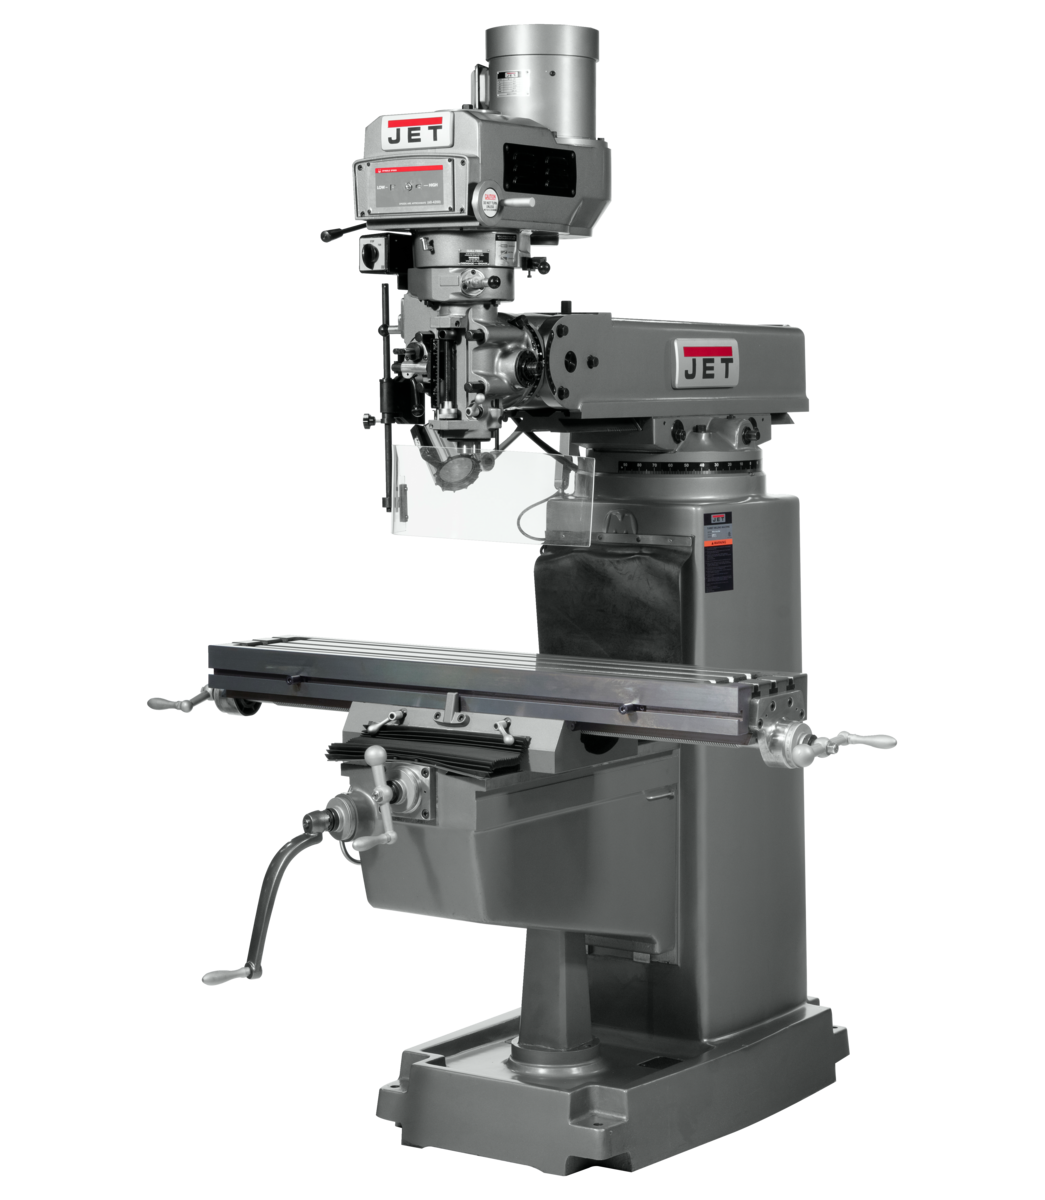 JTM-1050VS2 Mill With Newall DP700 3-Axis (Knee) DRO and X-Axis Powerfeed